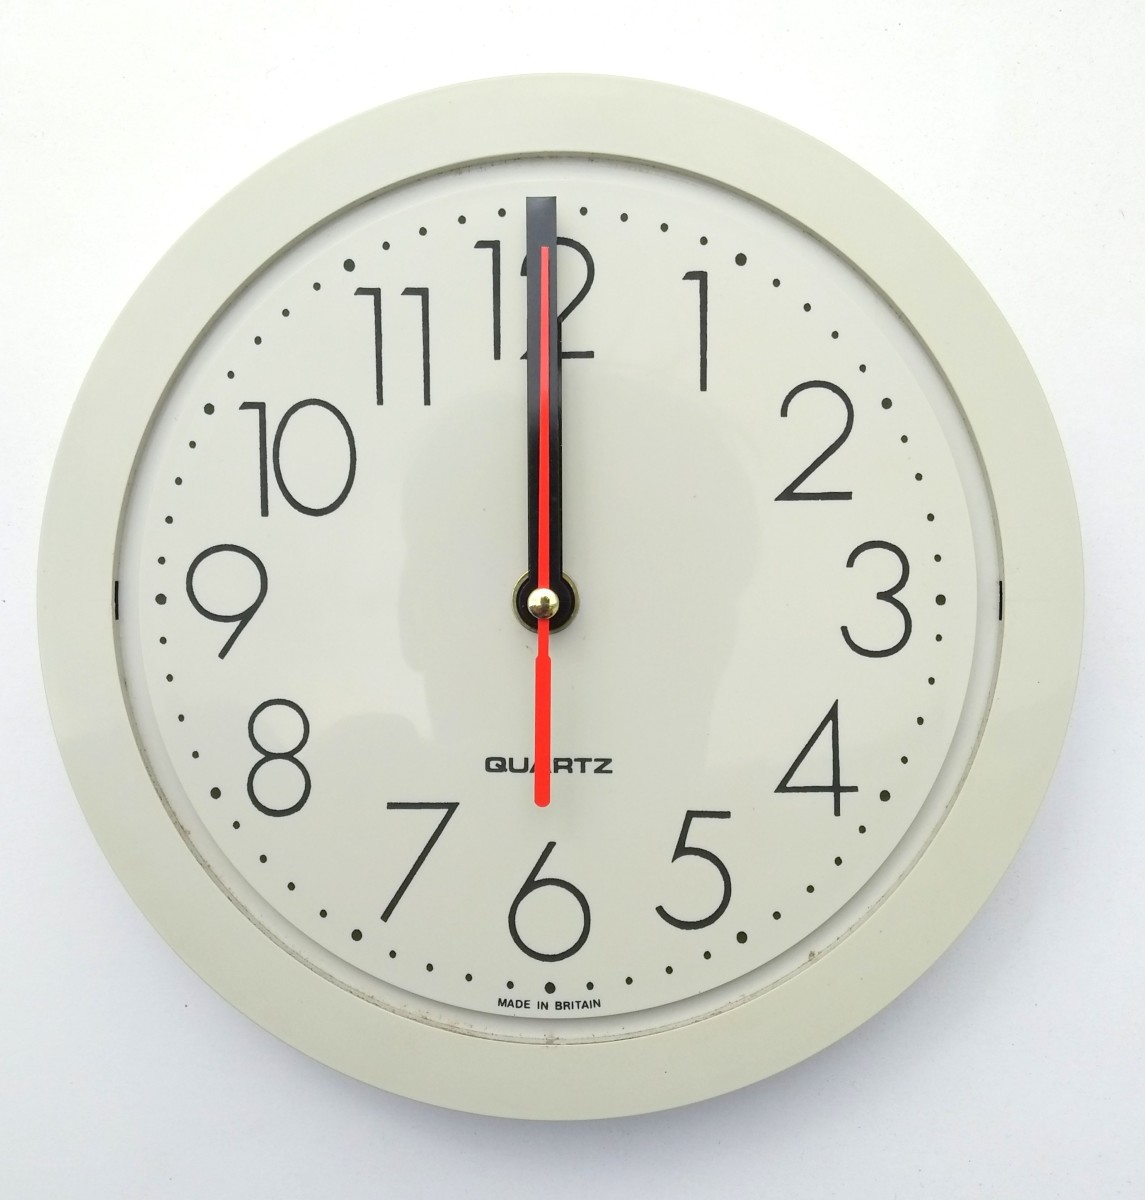 Replace both the hour, minute and second hand (if supplied) and point them all to 12 o'clock. Then set the time after replacing the battery.